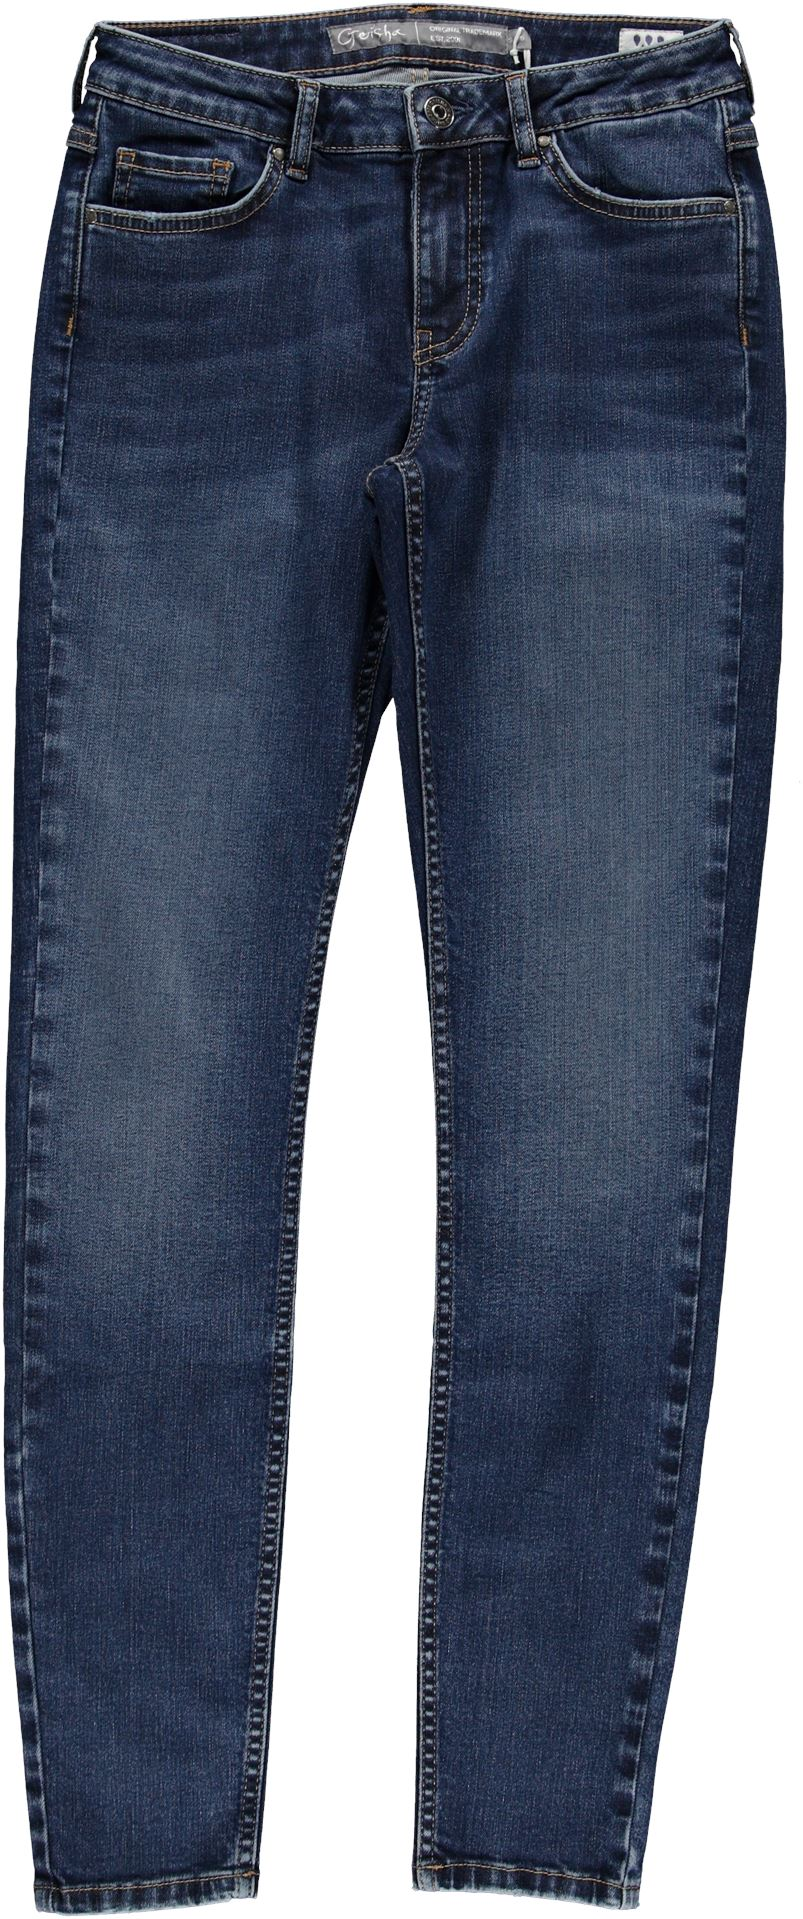 GEISHA - Denim jeans ECO-AWARE - 000827 - mid blue denim